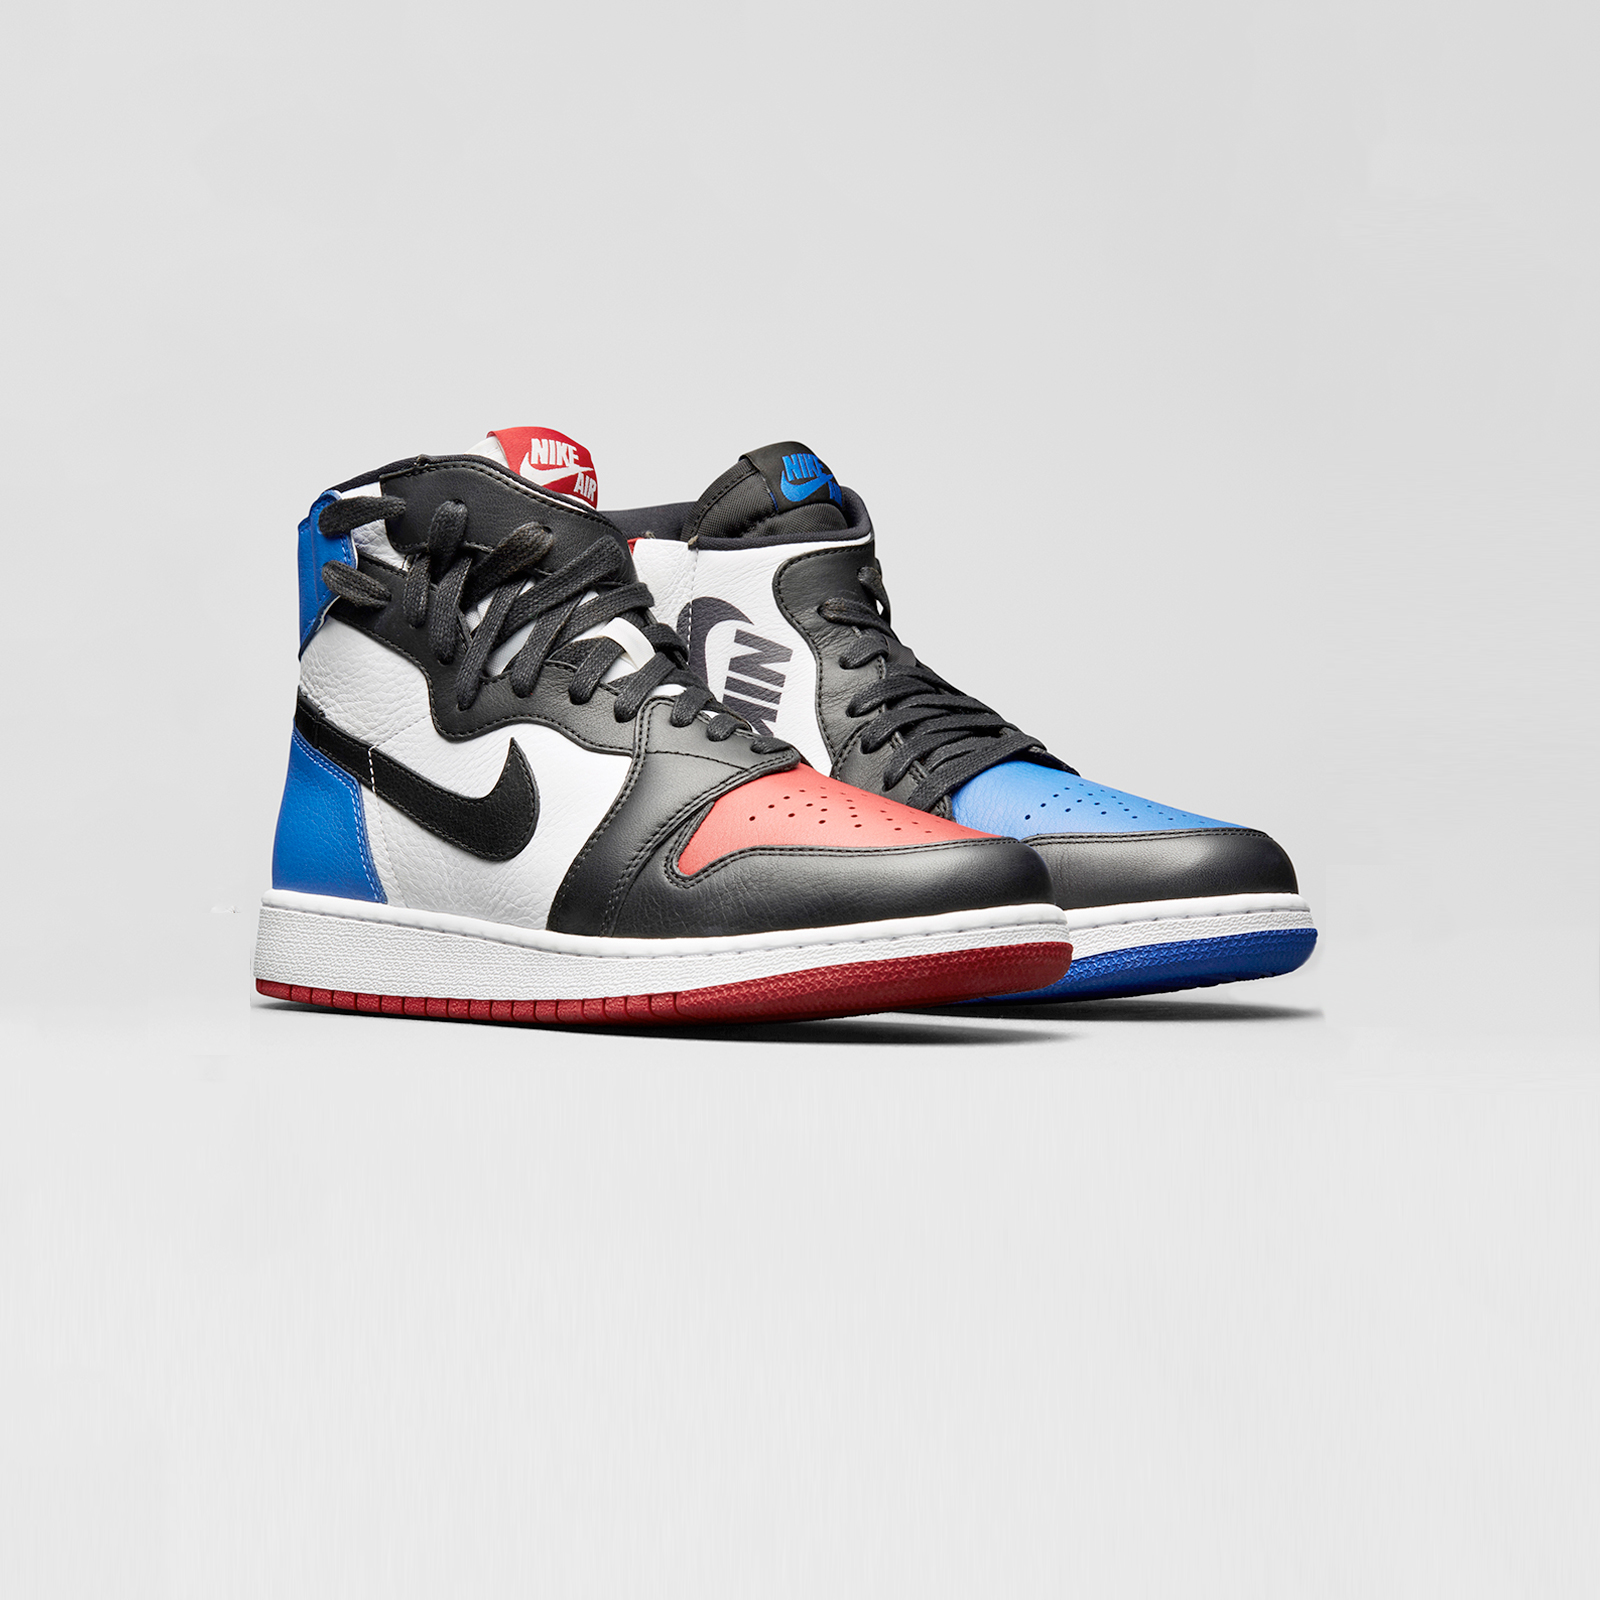 separation shoes 87812 30878 Jordan Brand Air Jordan 1 Rebel XX OG - At4151-001 ...